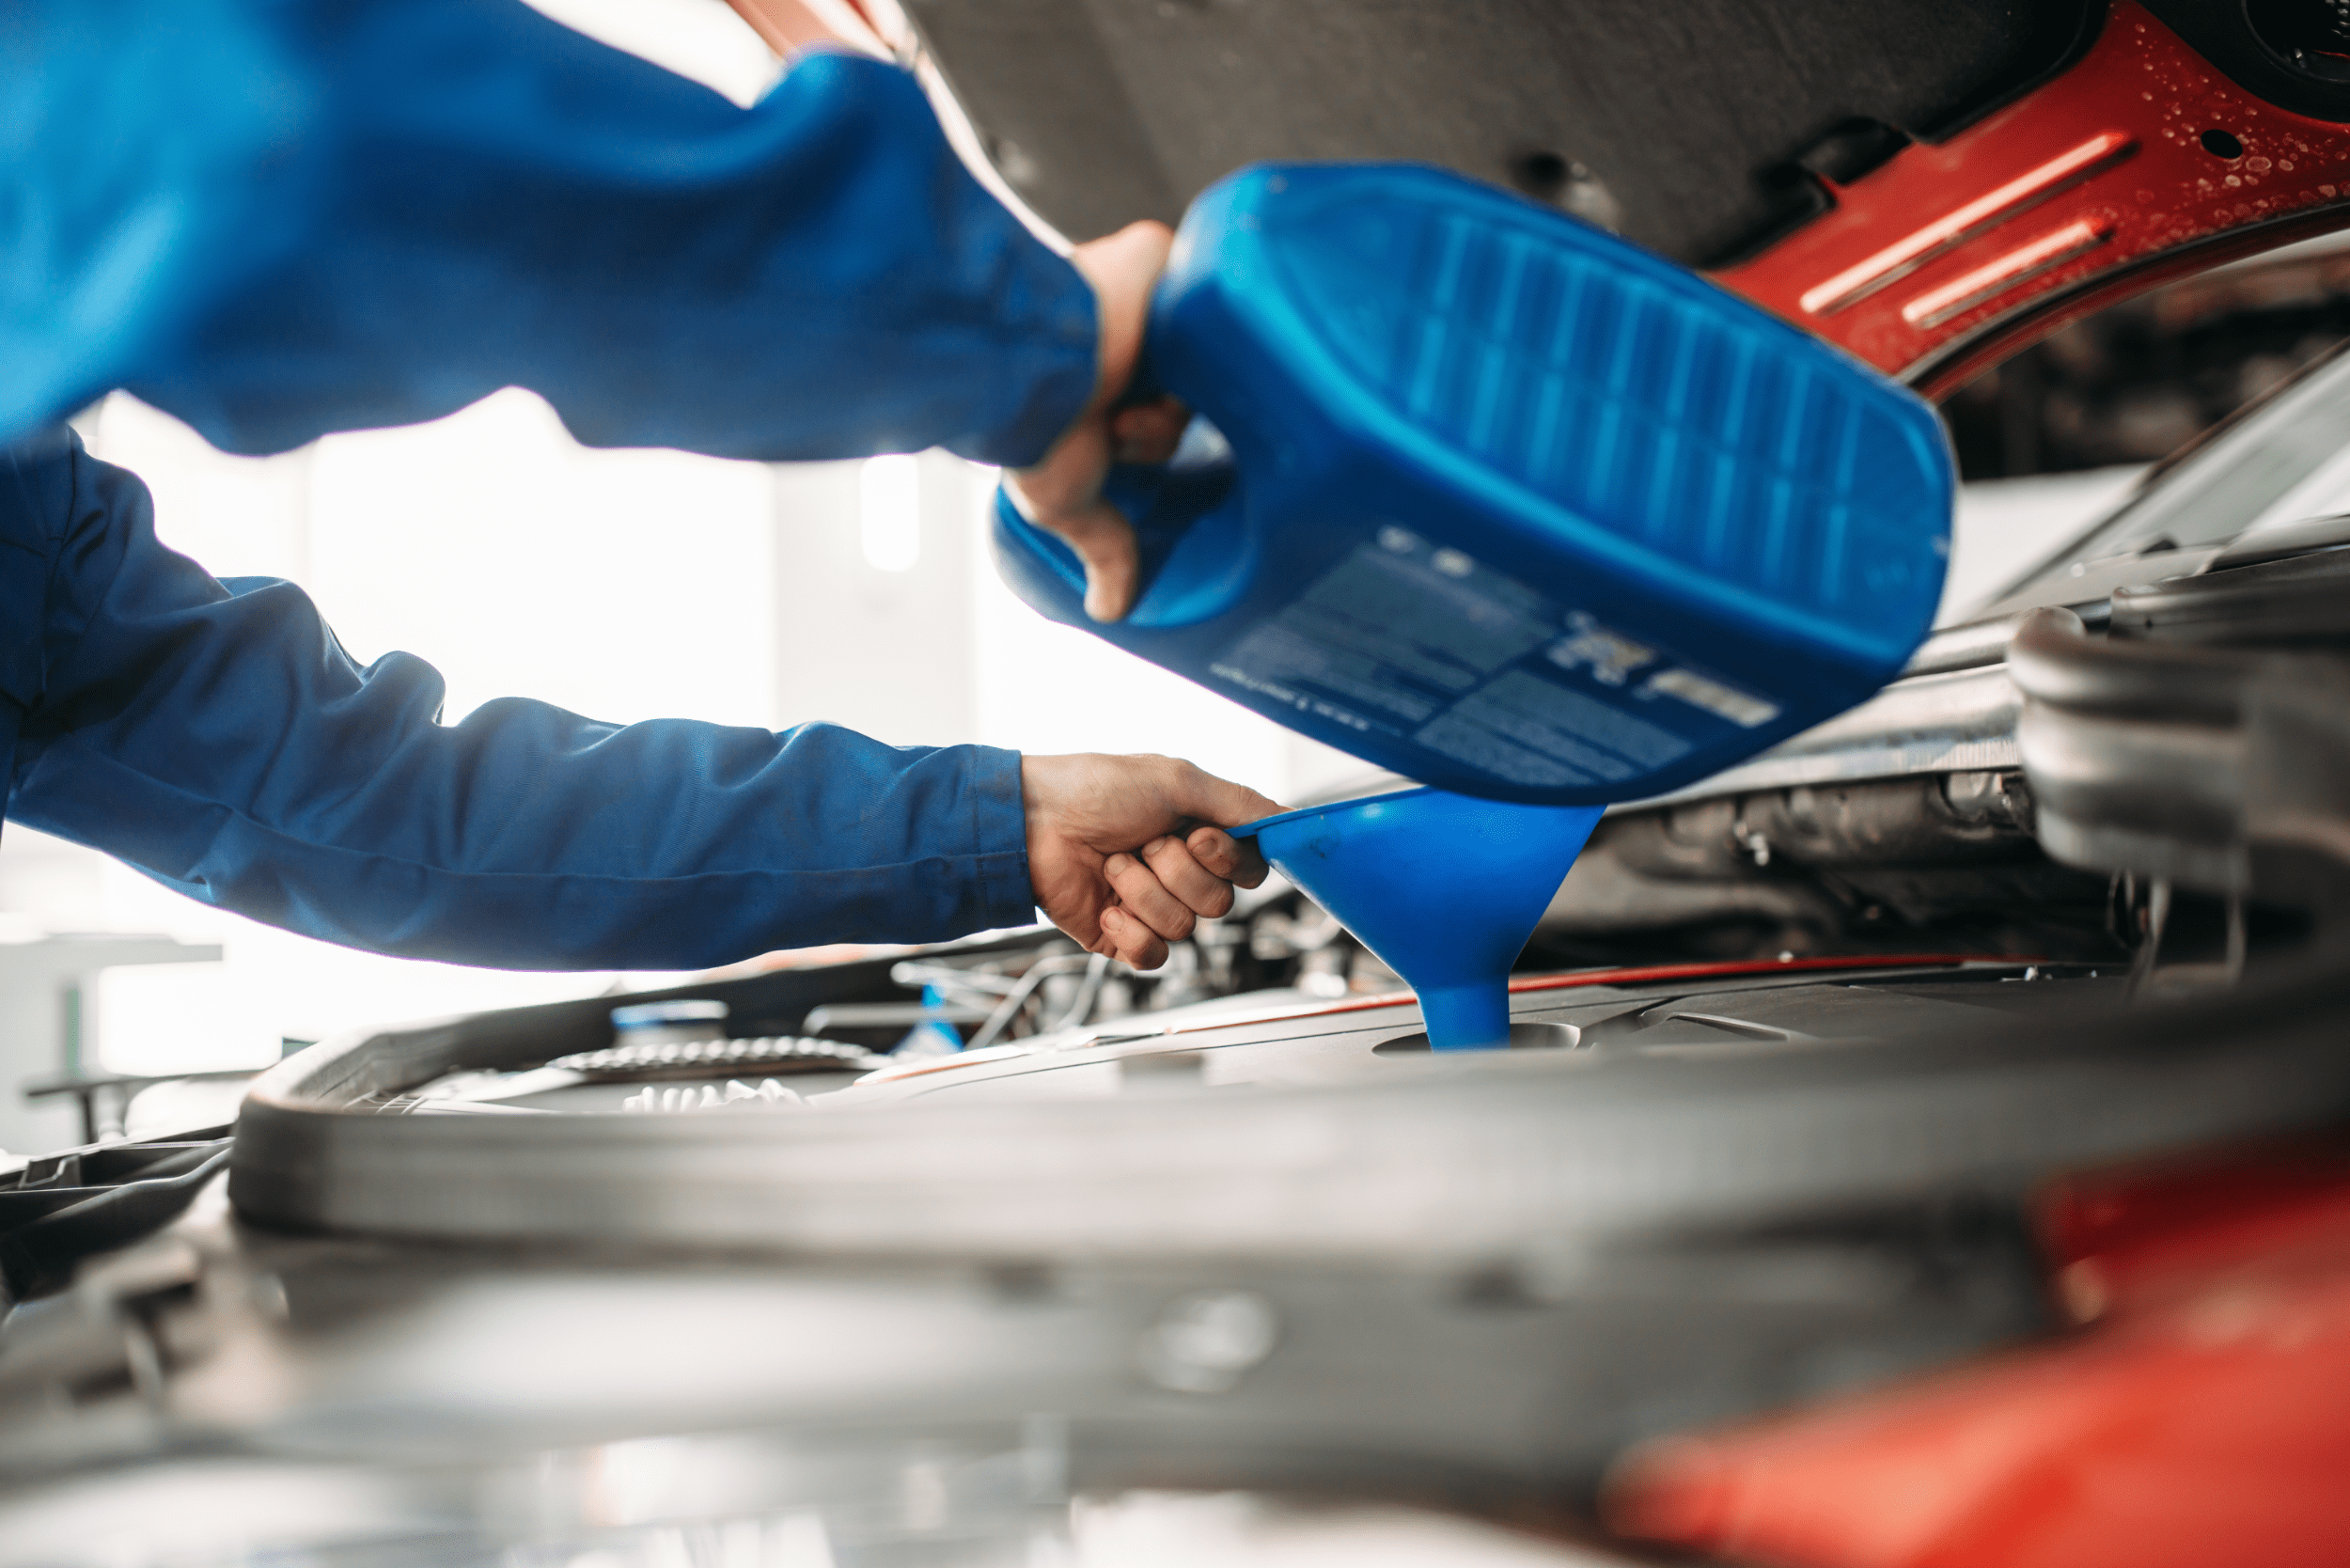 Oil and filter service